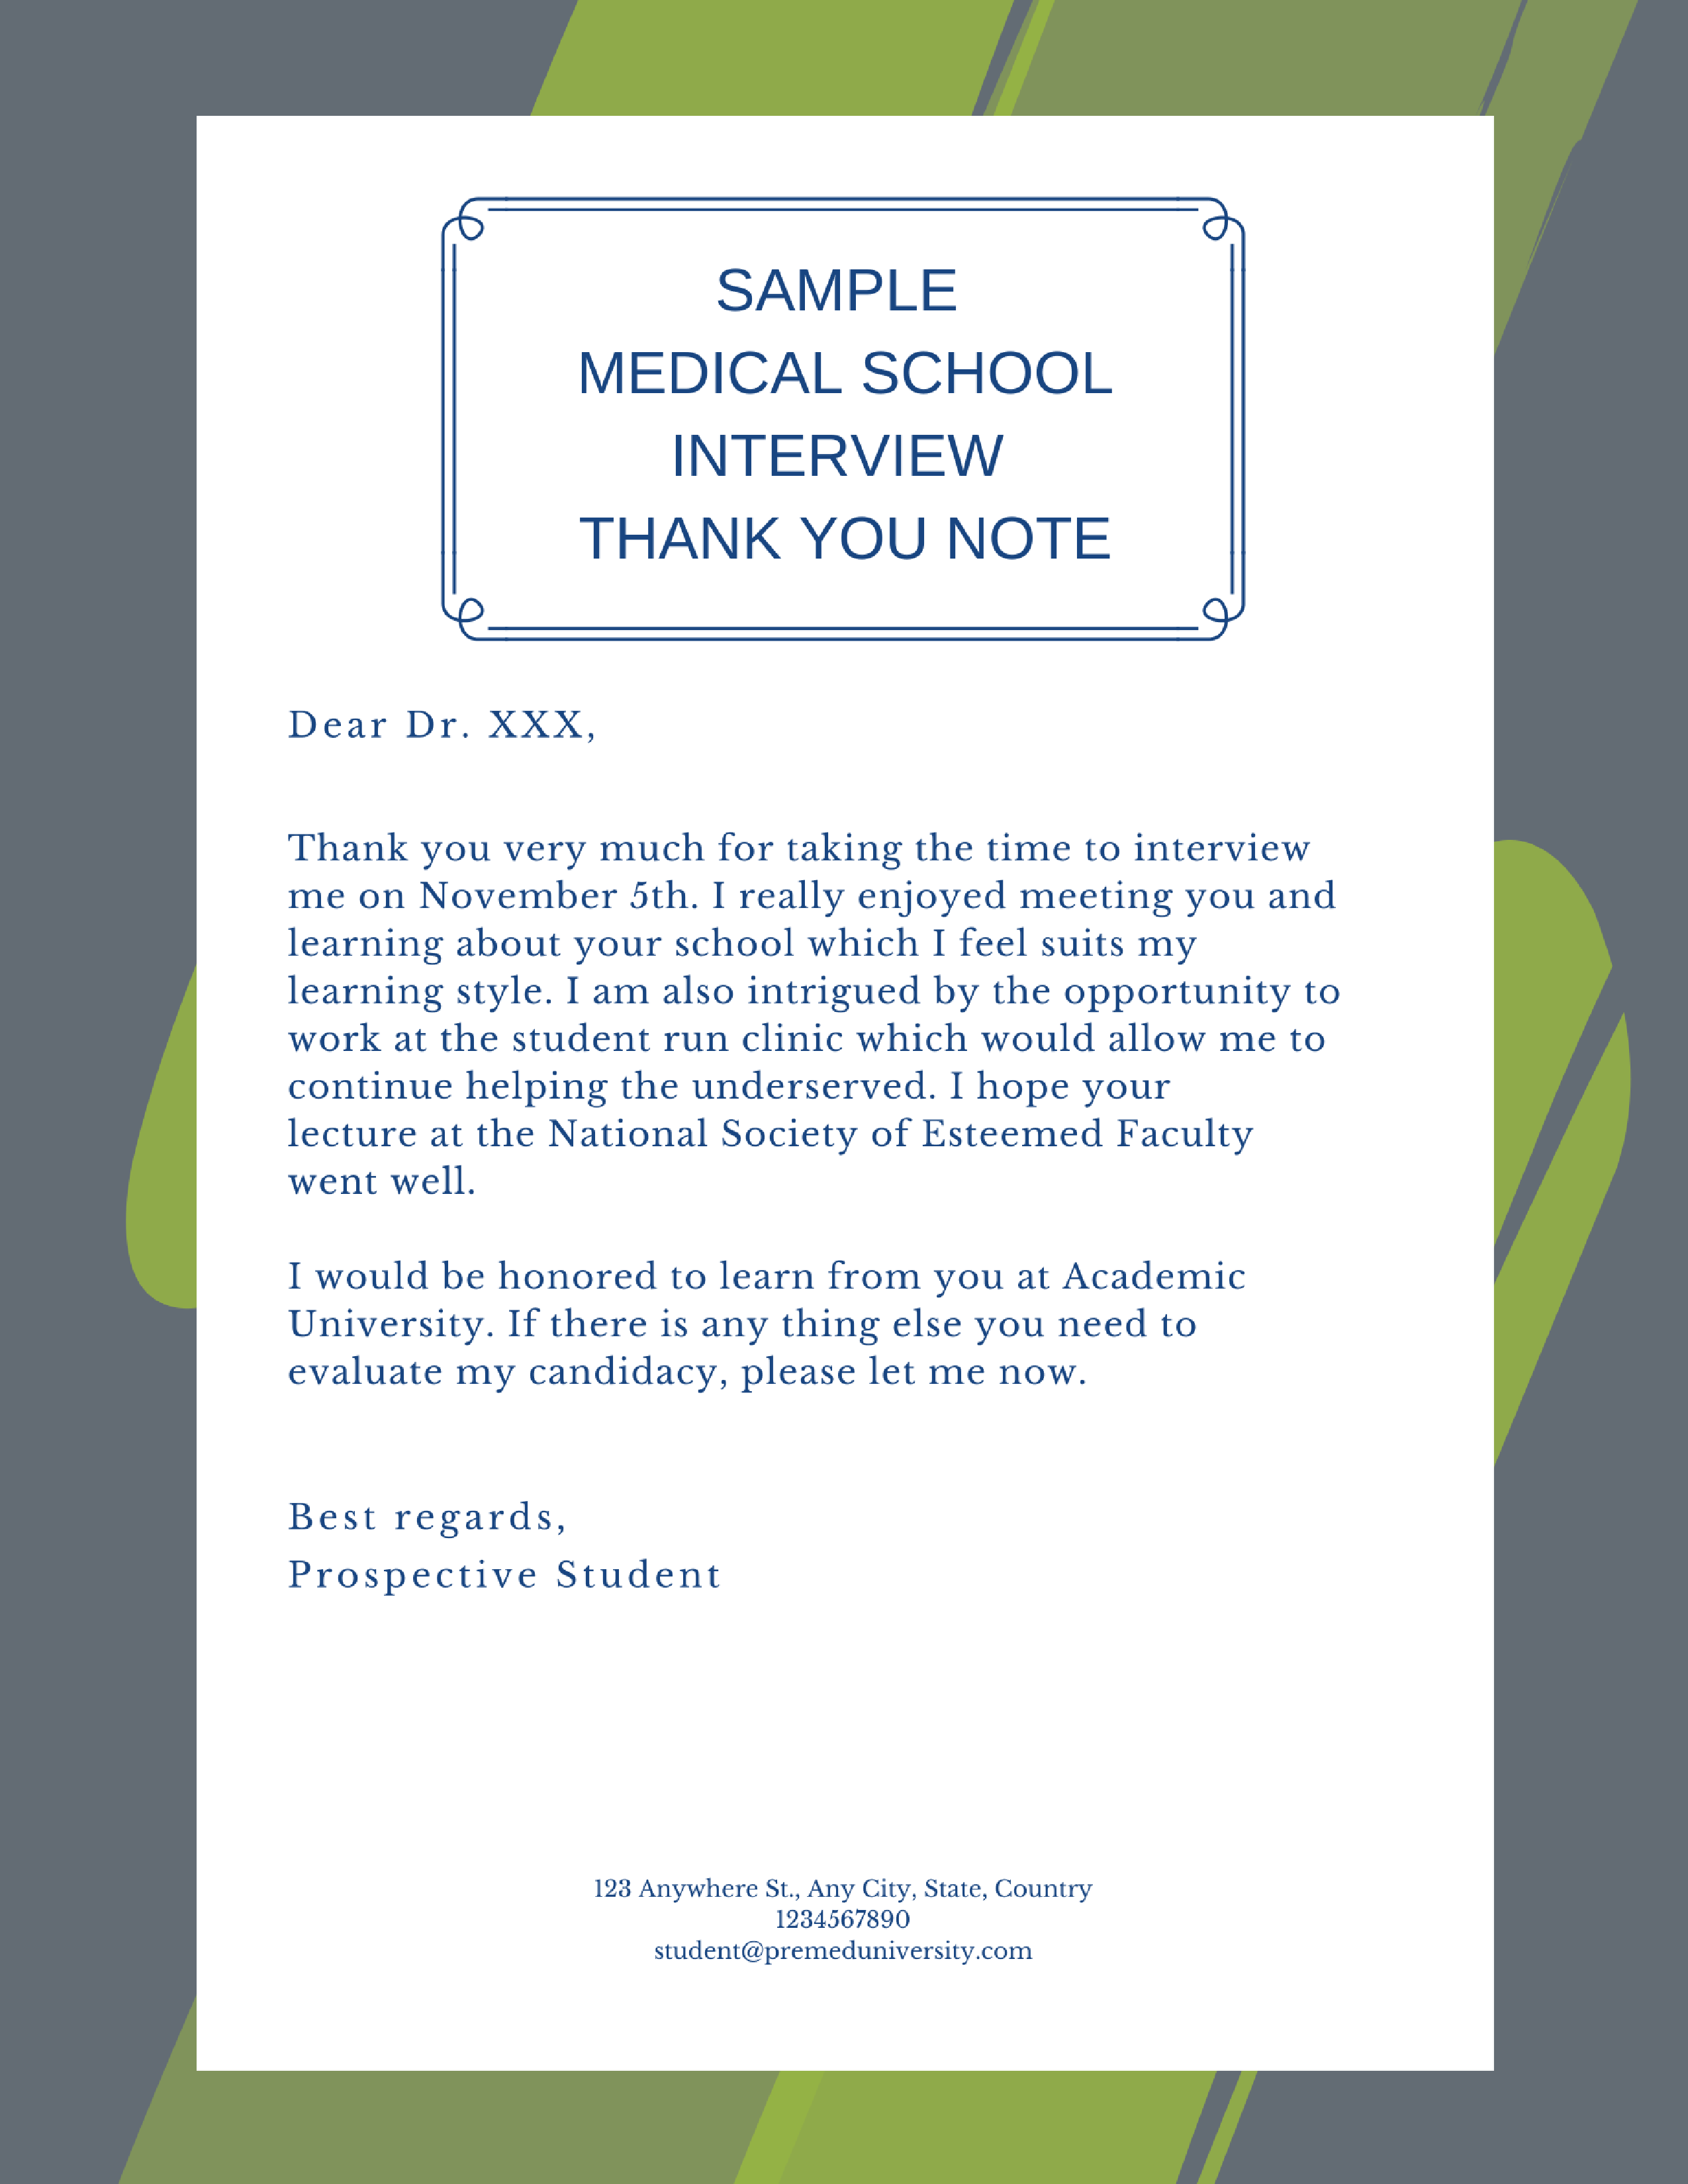 handwritten or emailed thank you notes for medical school interviews